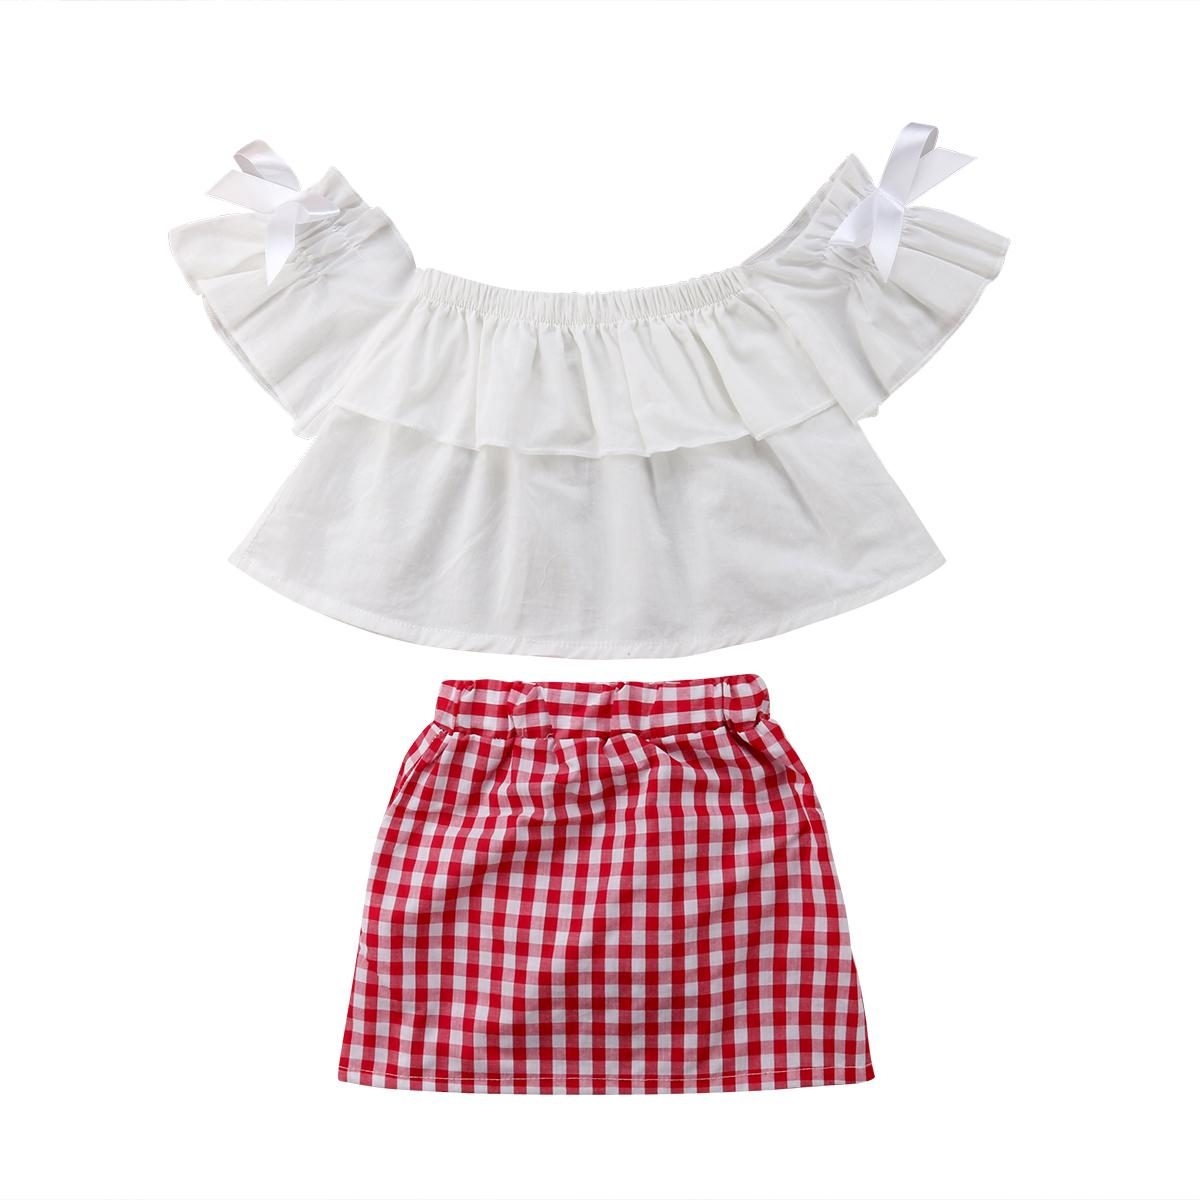 Clothing, Shoes & Accessories 2pcs Cute Children Outfits Kids Girls Plaid Short Sleeve Off Shoulder Tops Outfits & Sets